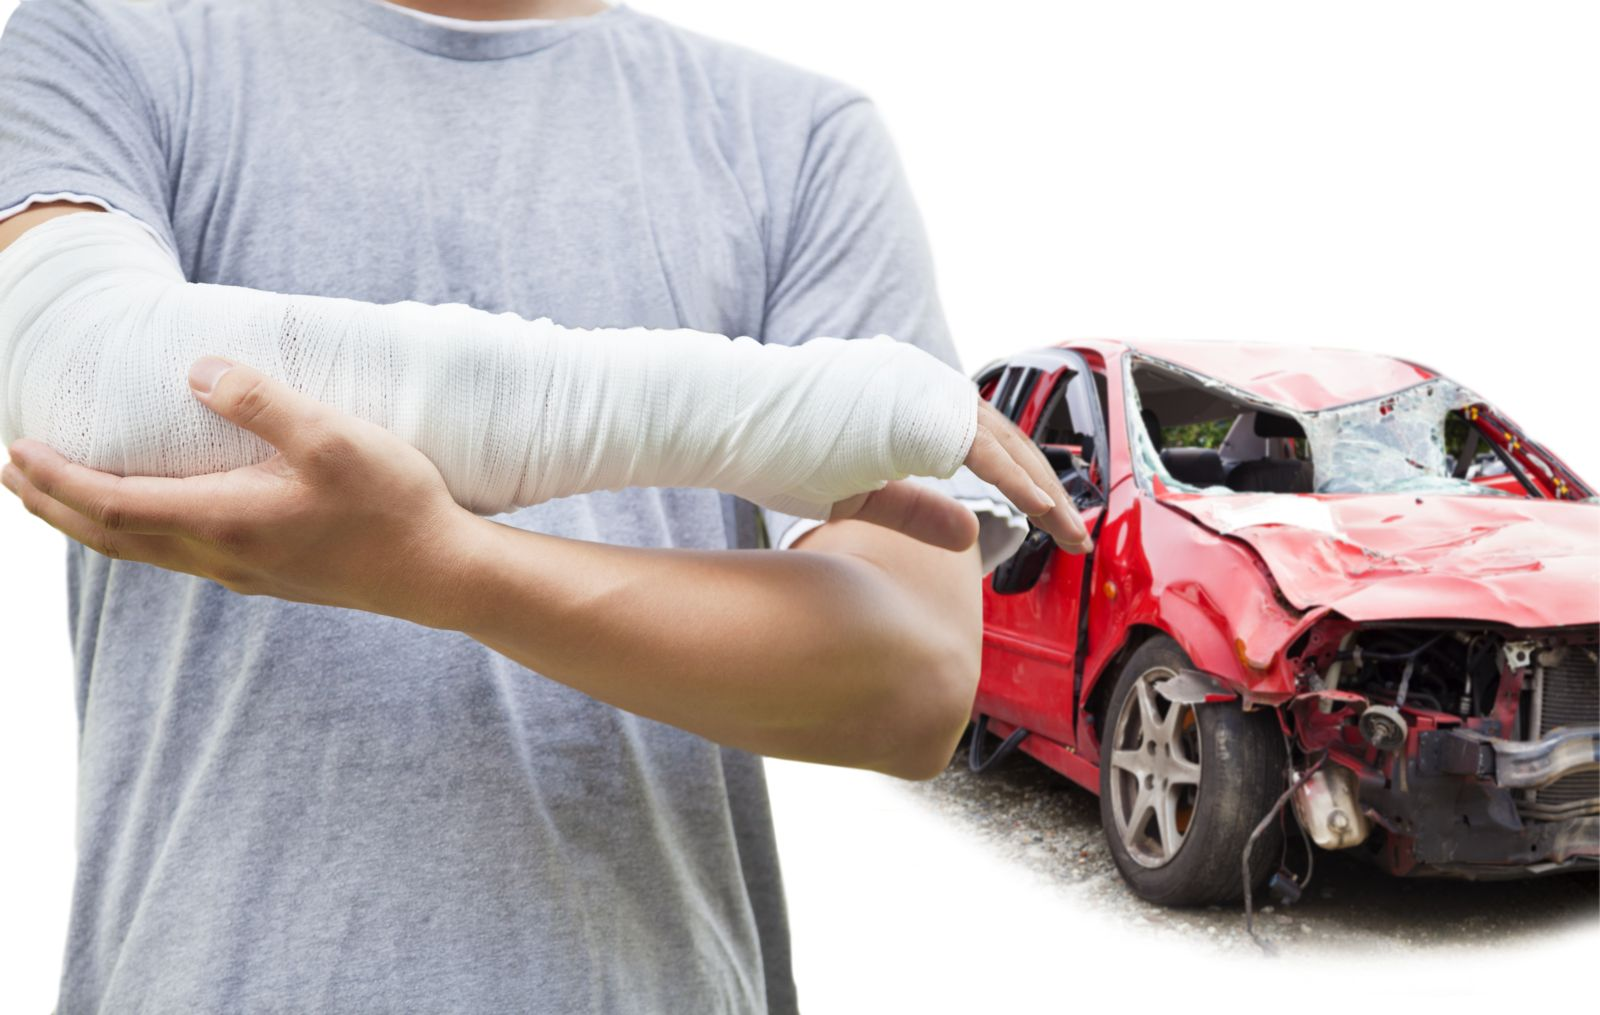 Man Holding Bandaged Arm in Front of Wrecked Car